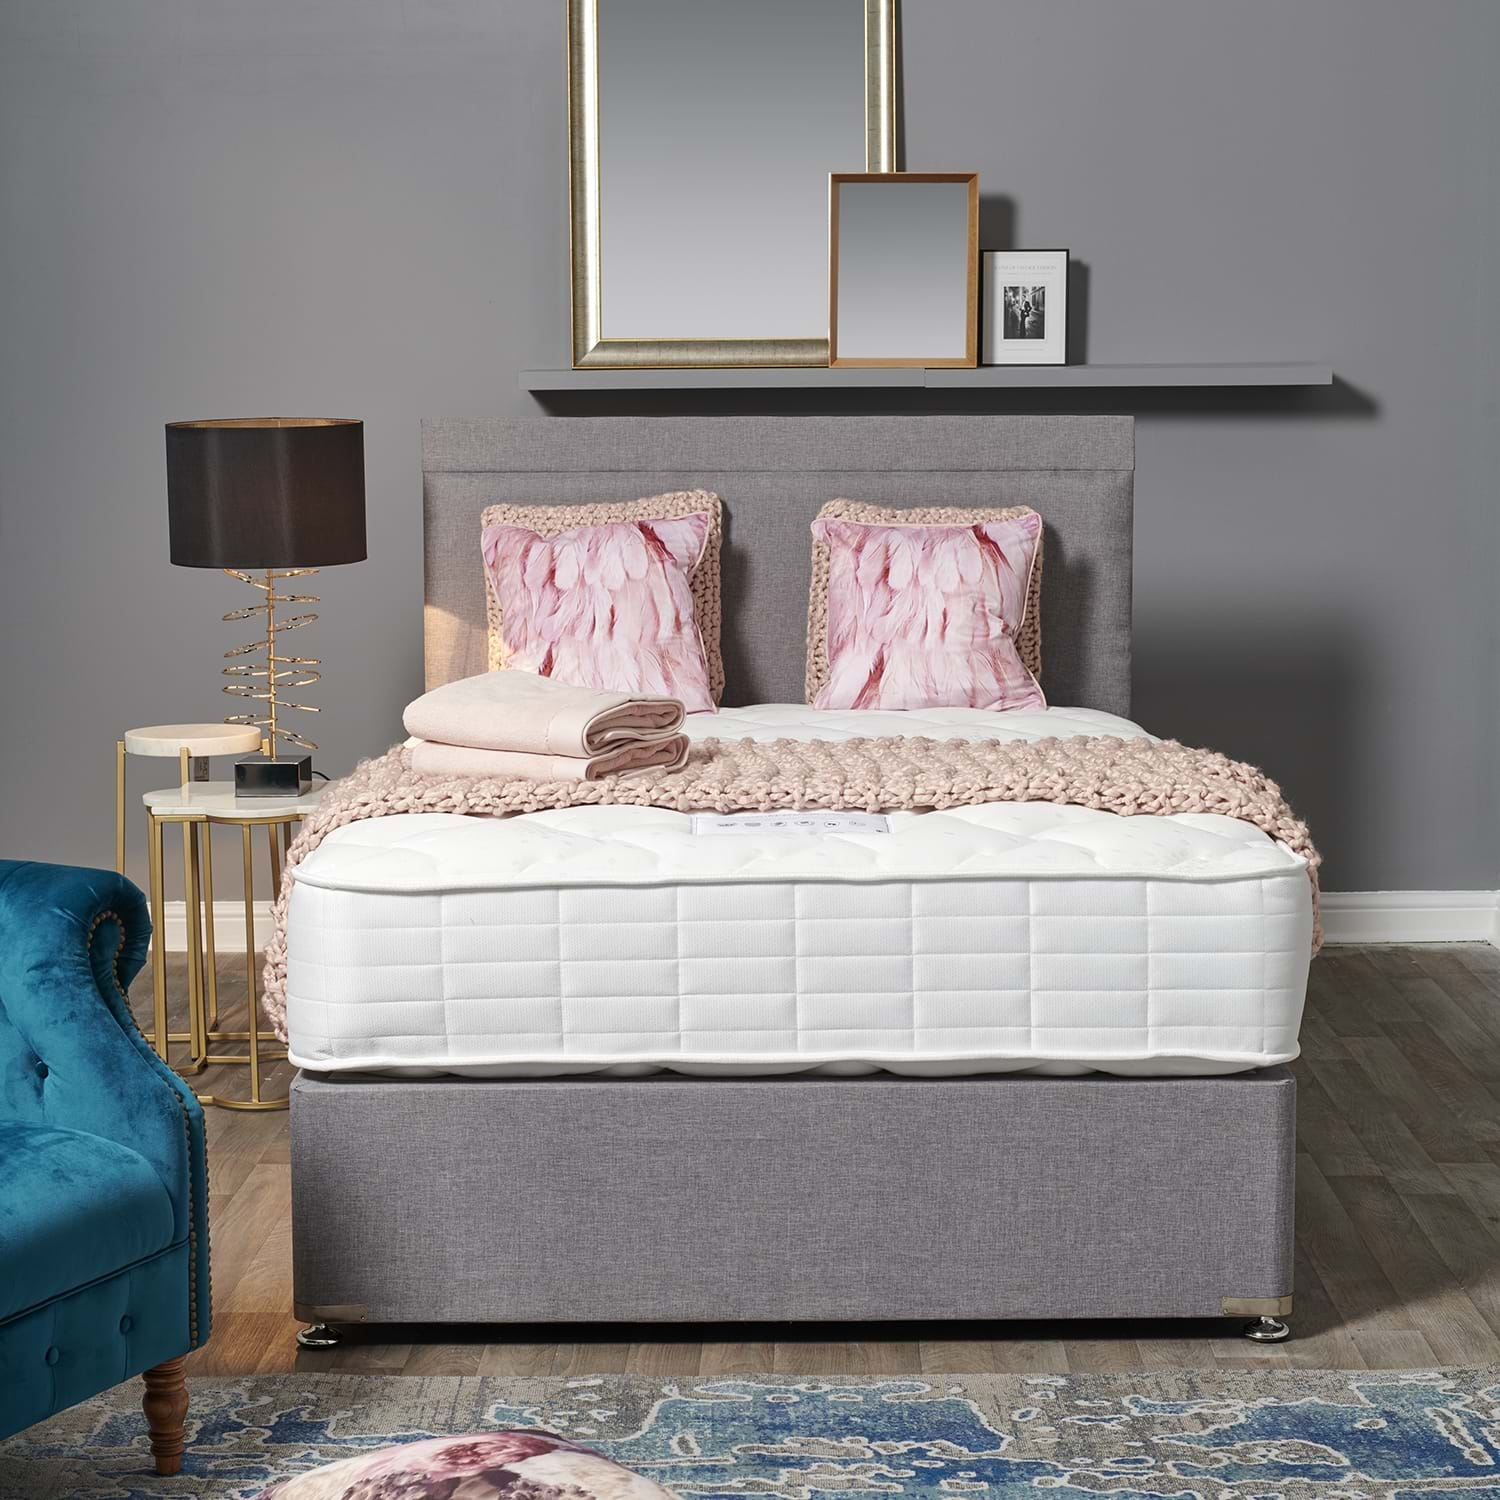 Image of Dura Beds Garbo 2 Drawer Divan Bed Set, Double, Silver